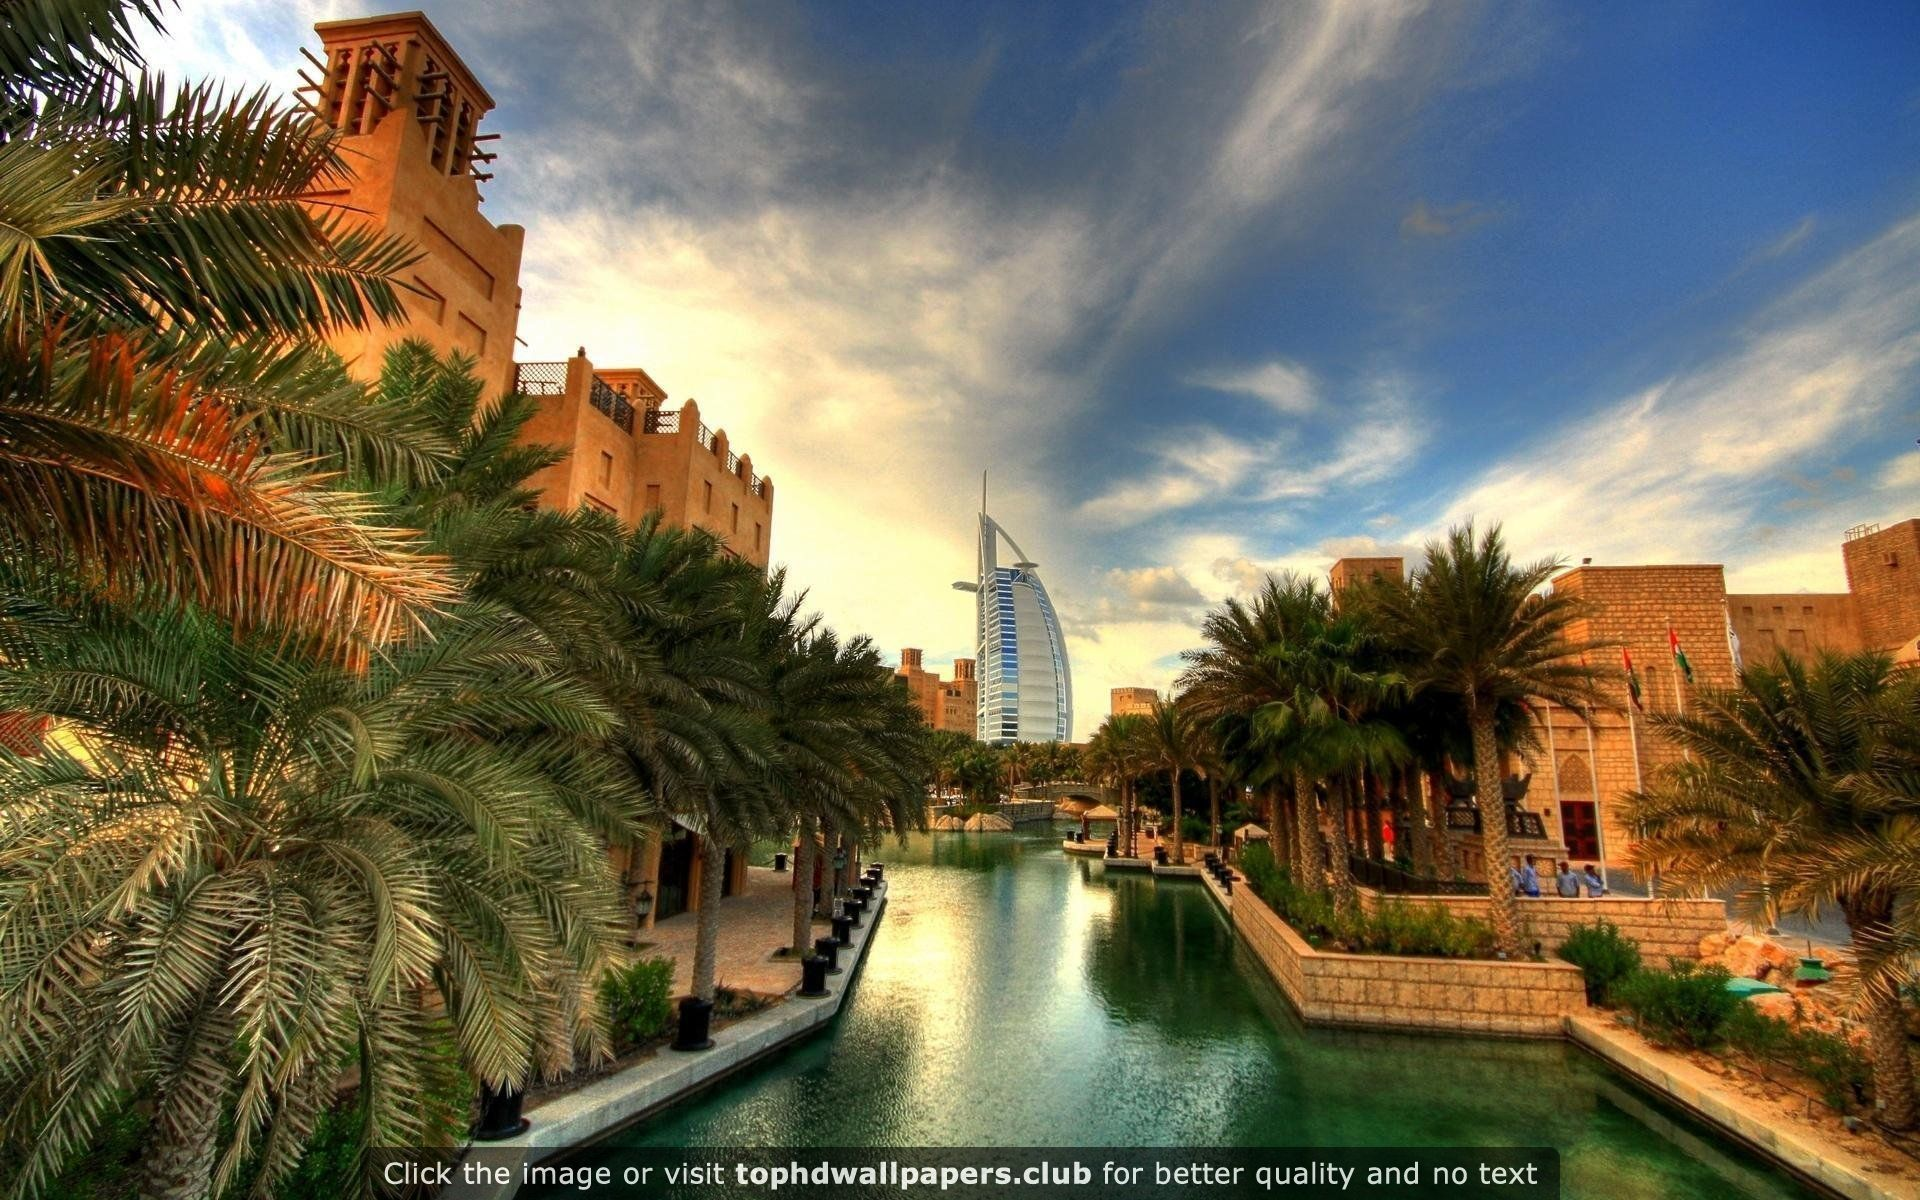 Best burj 4K or HD wallpapers for your PC Mac or Mobile Device